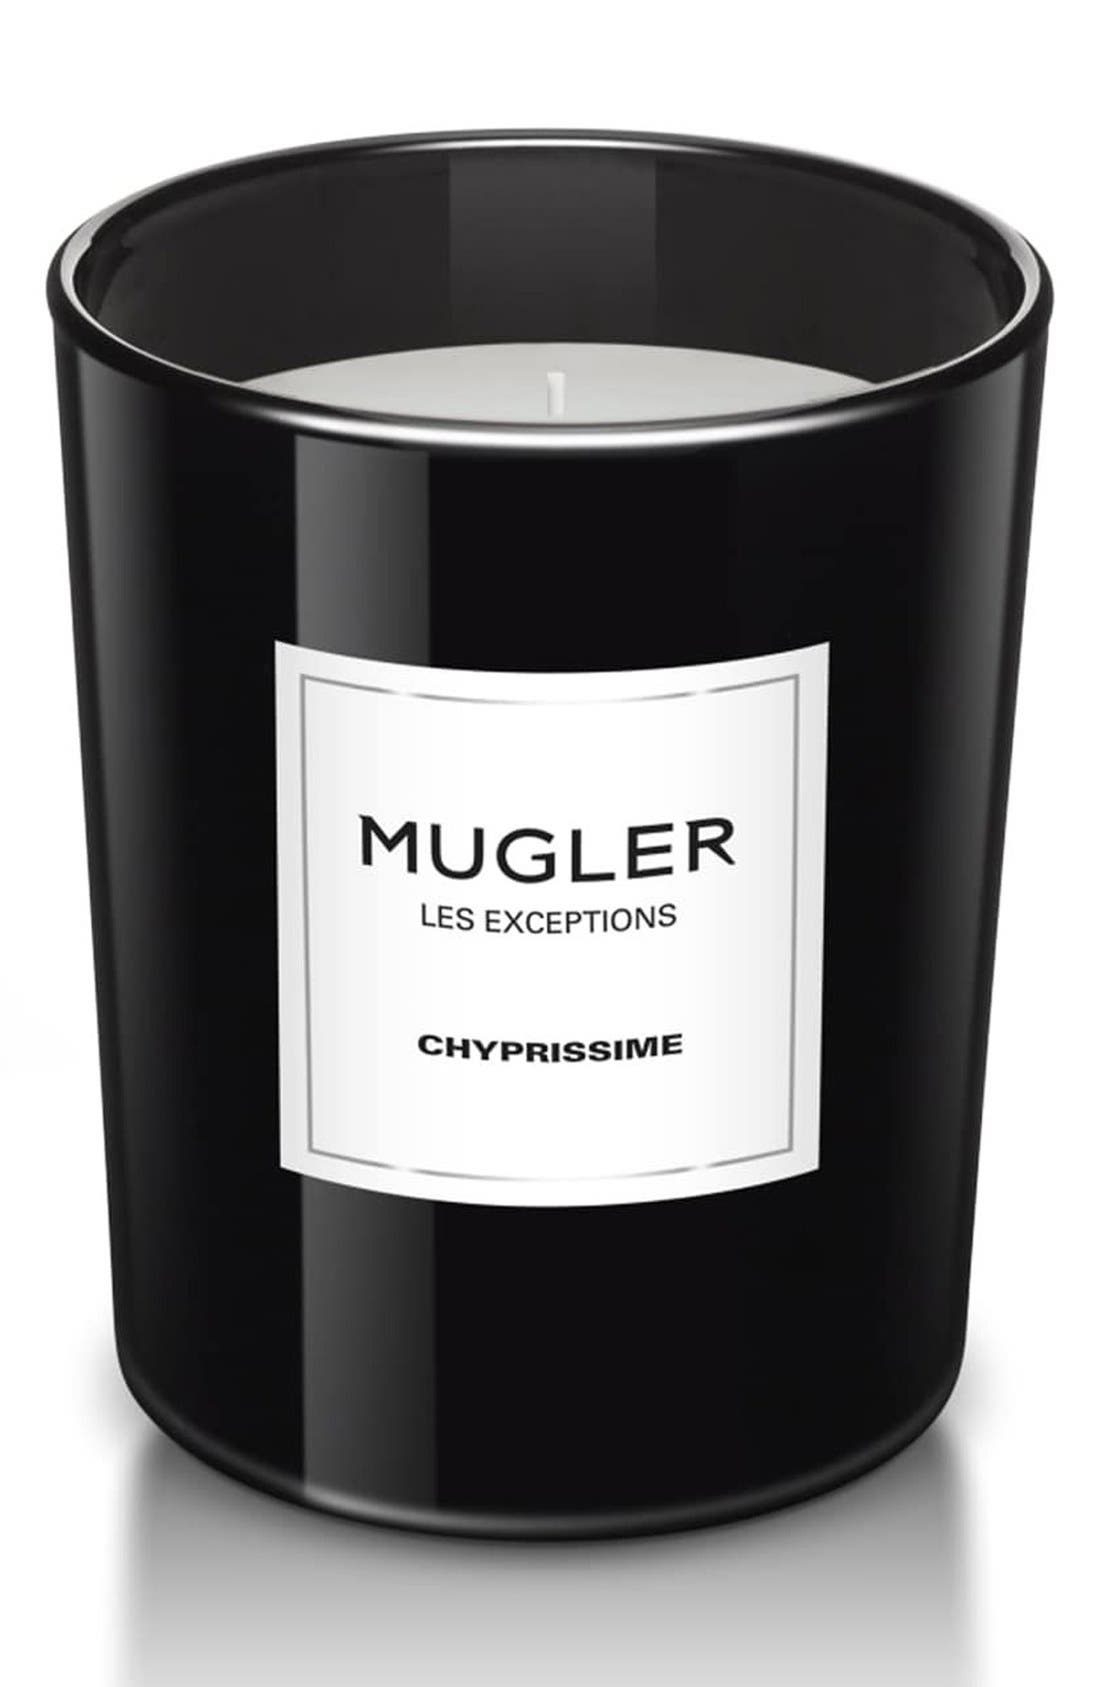 THIERRY MUGLER Mugler 'Les Exceptions - Chyprissime' Candle